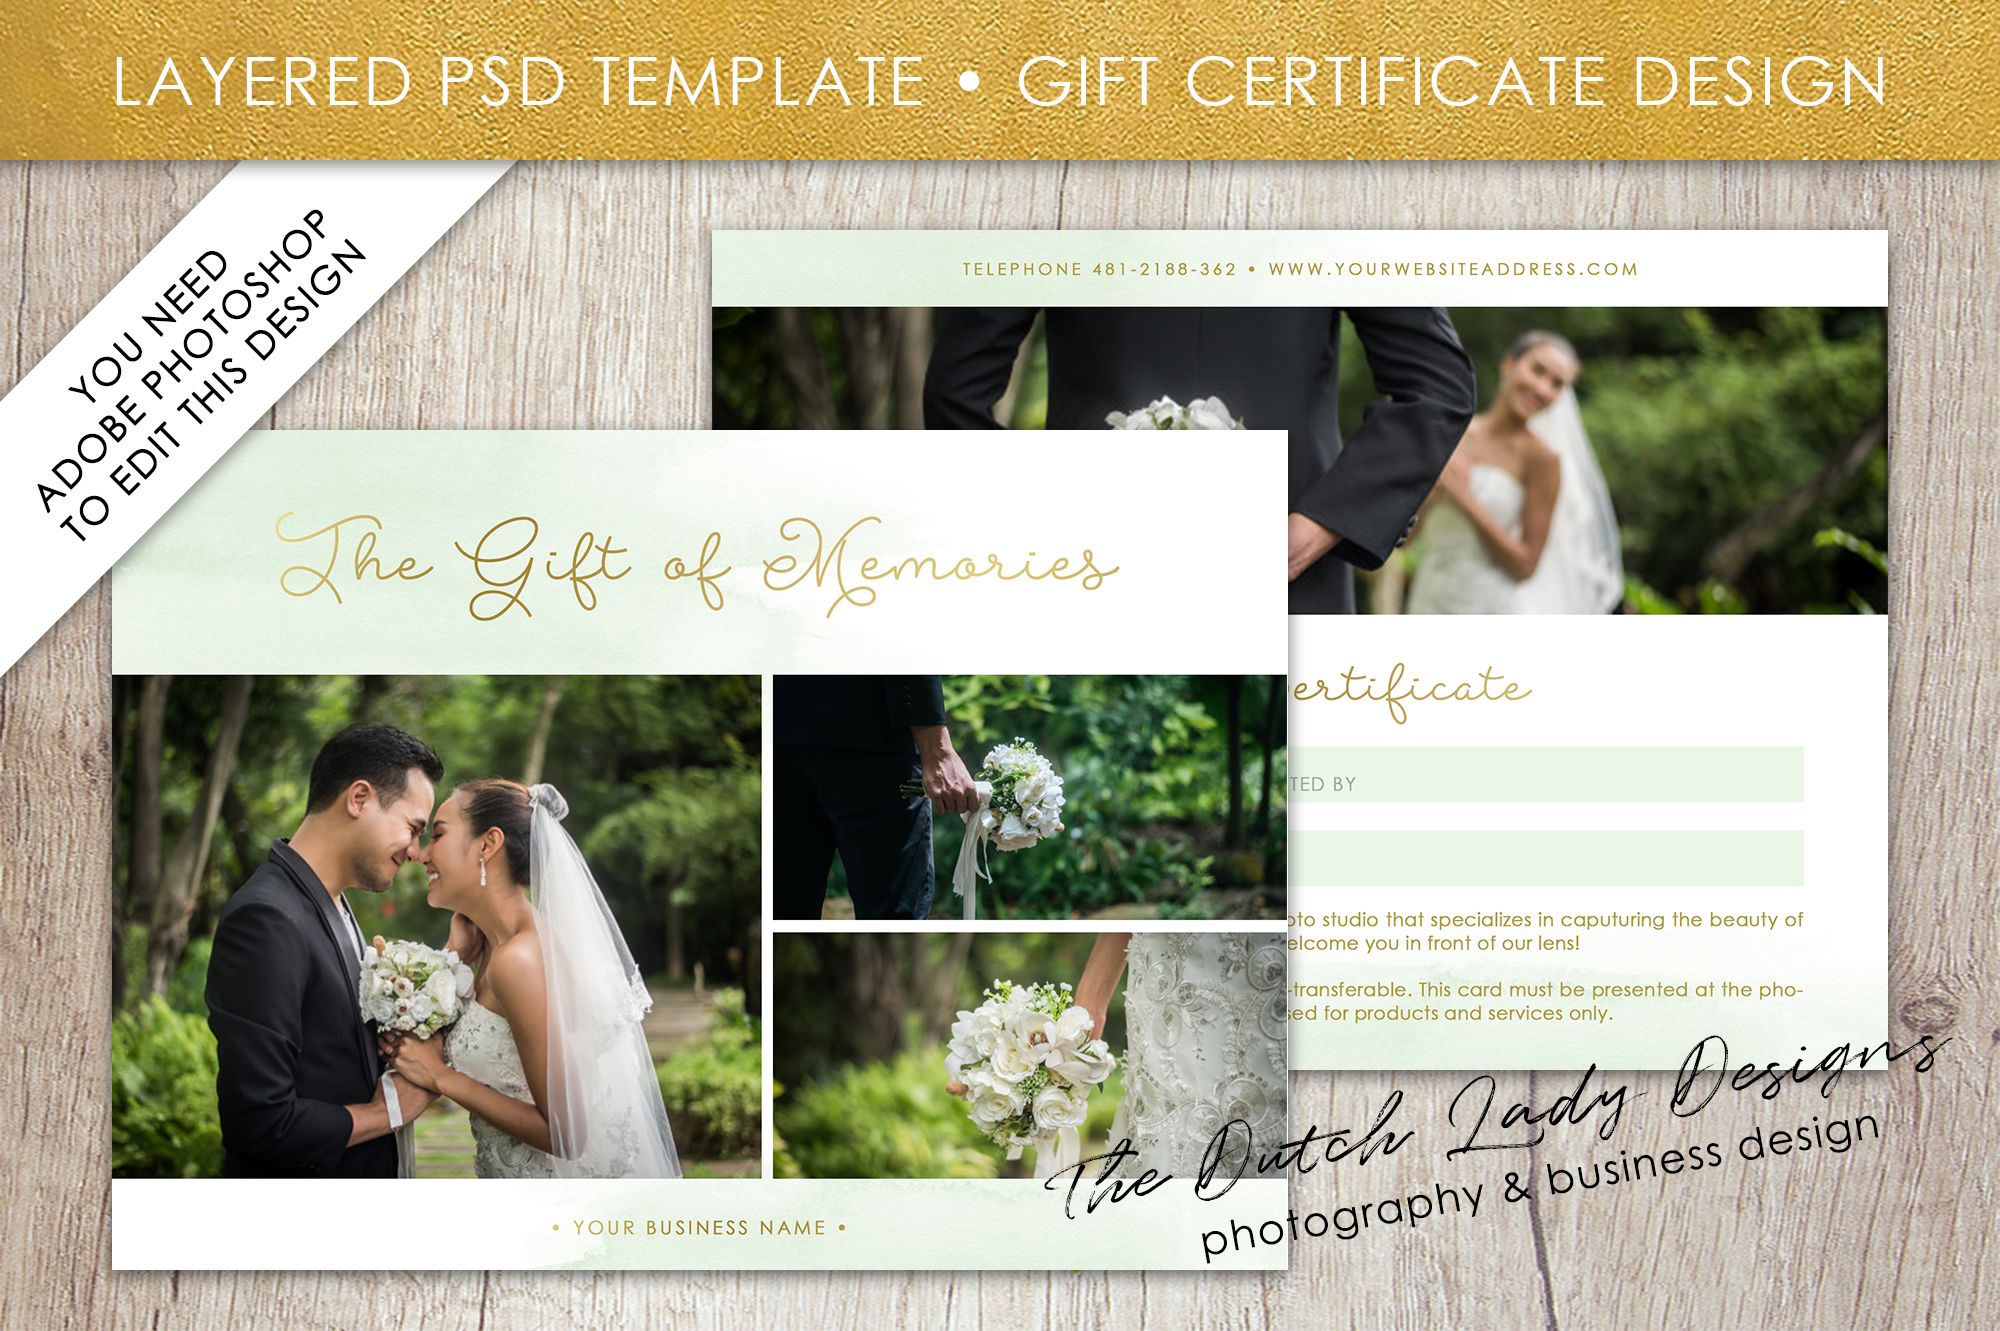 photo gift card template for adobe photoshop 50 example image 1